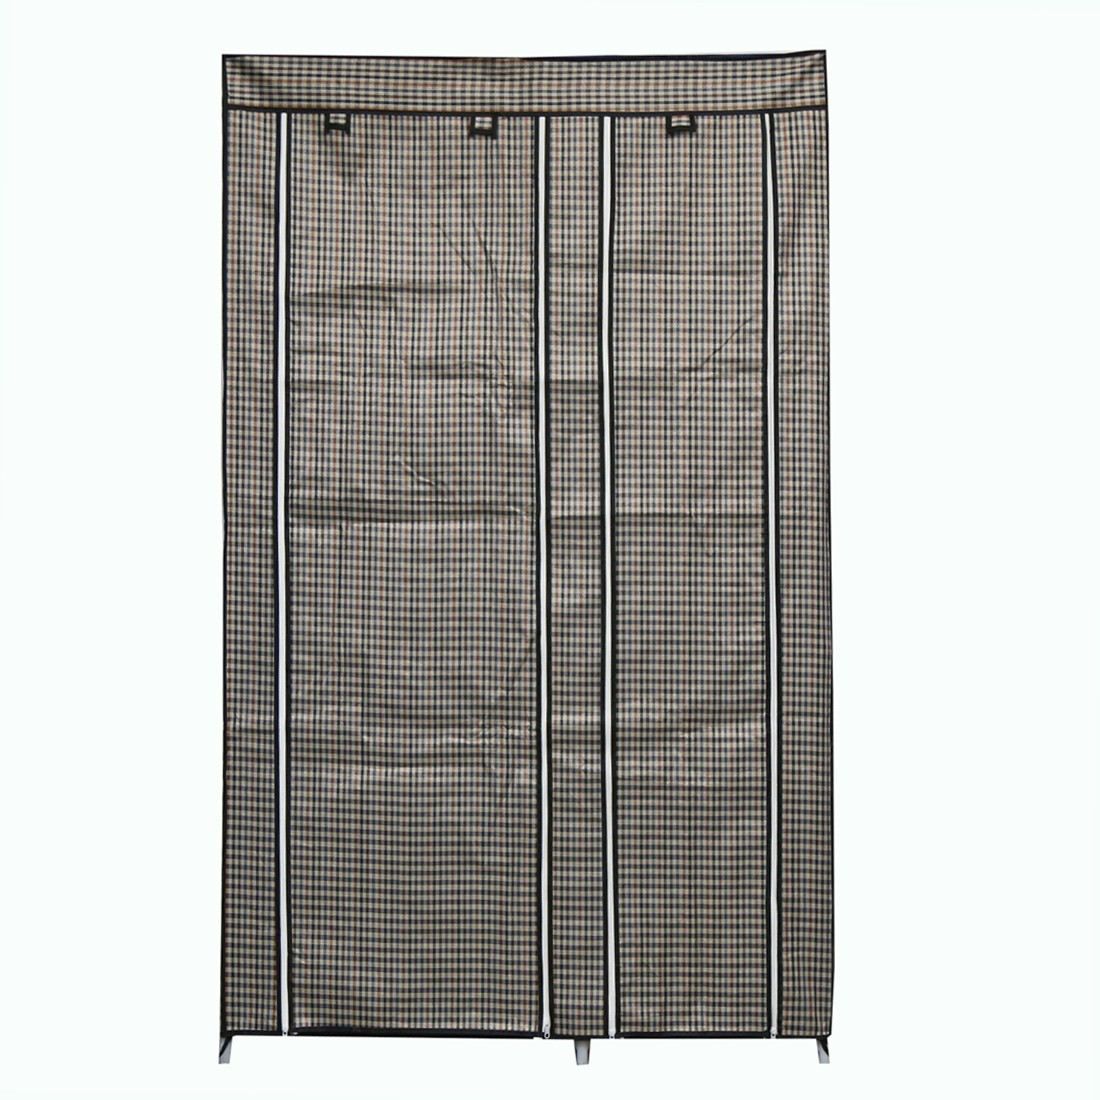 View Online World Carbon Steel Collapsible Wardrobe(Finish Color - Grey and Black) Furniture (Online World)